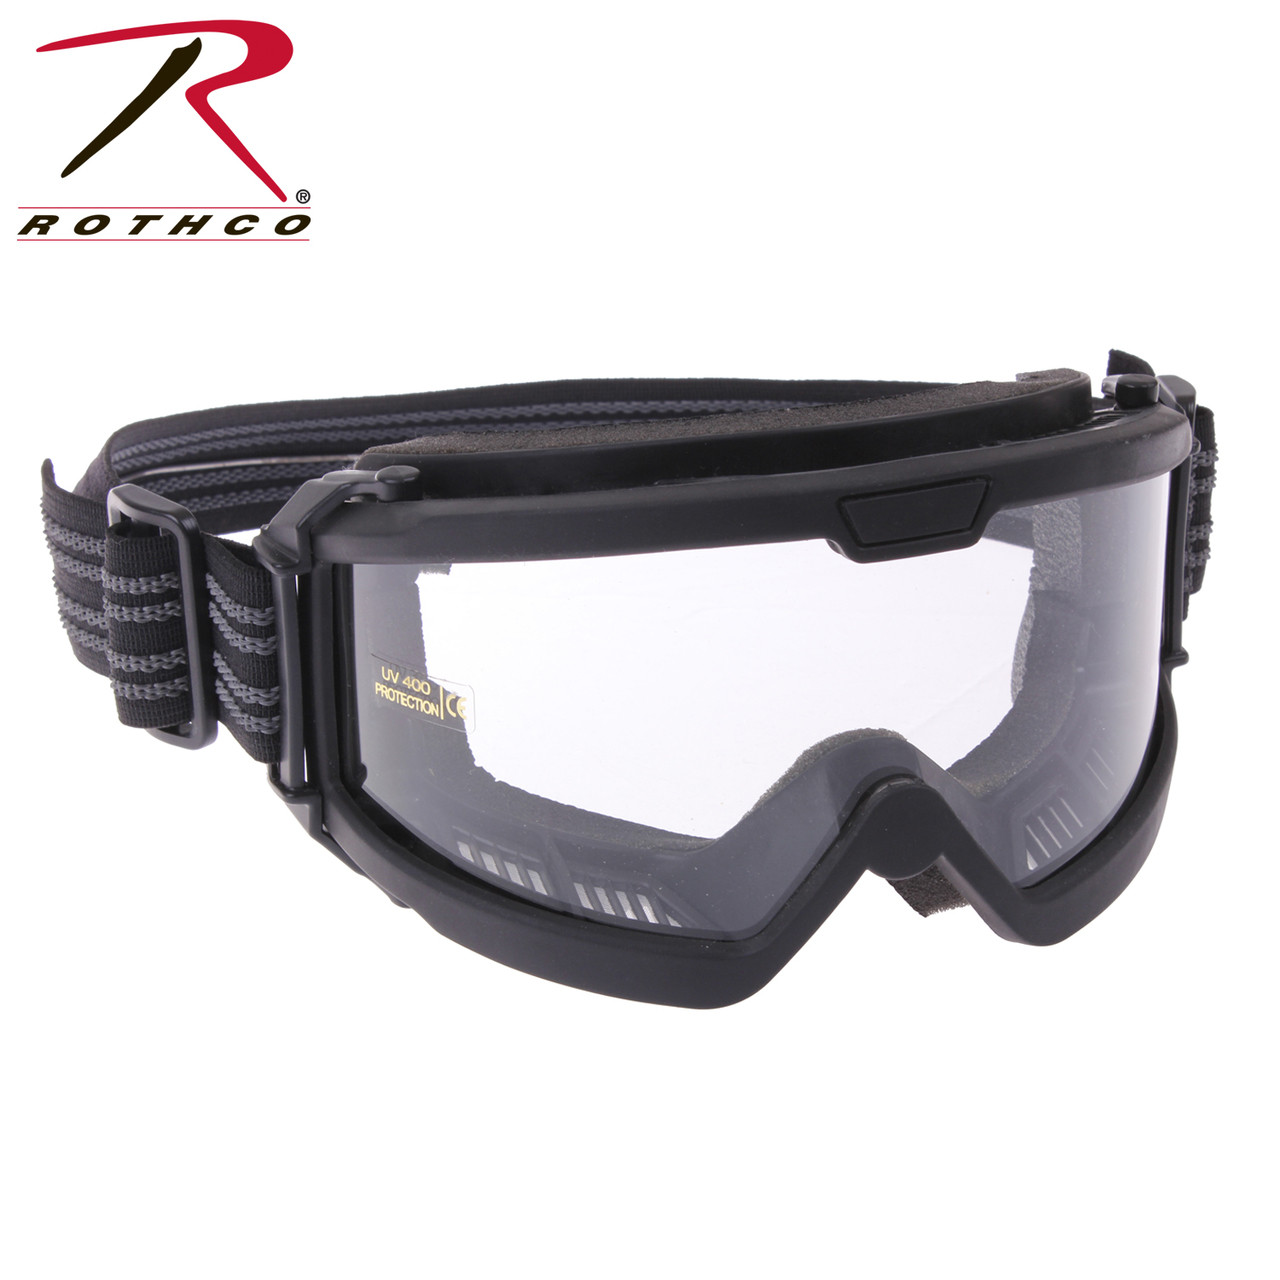 507450f08d1 Rothco OTG Ballistic Goggles - Hero Outdoors